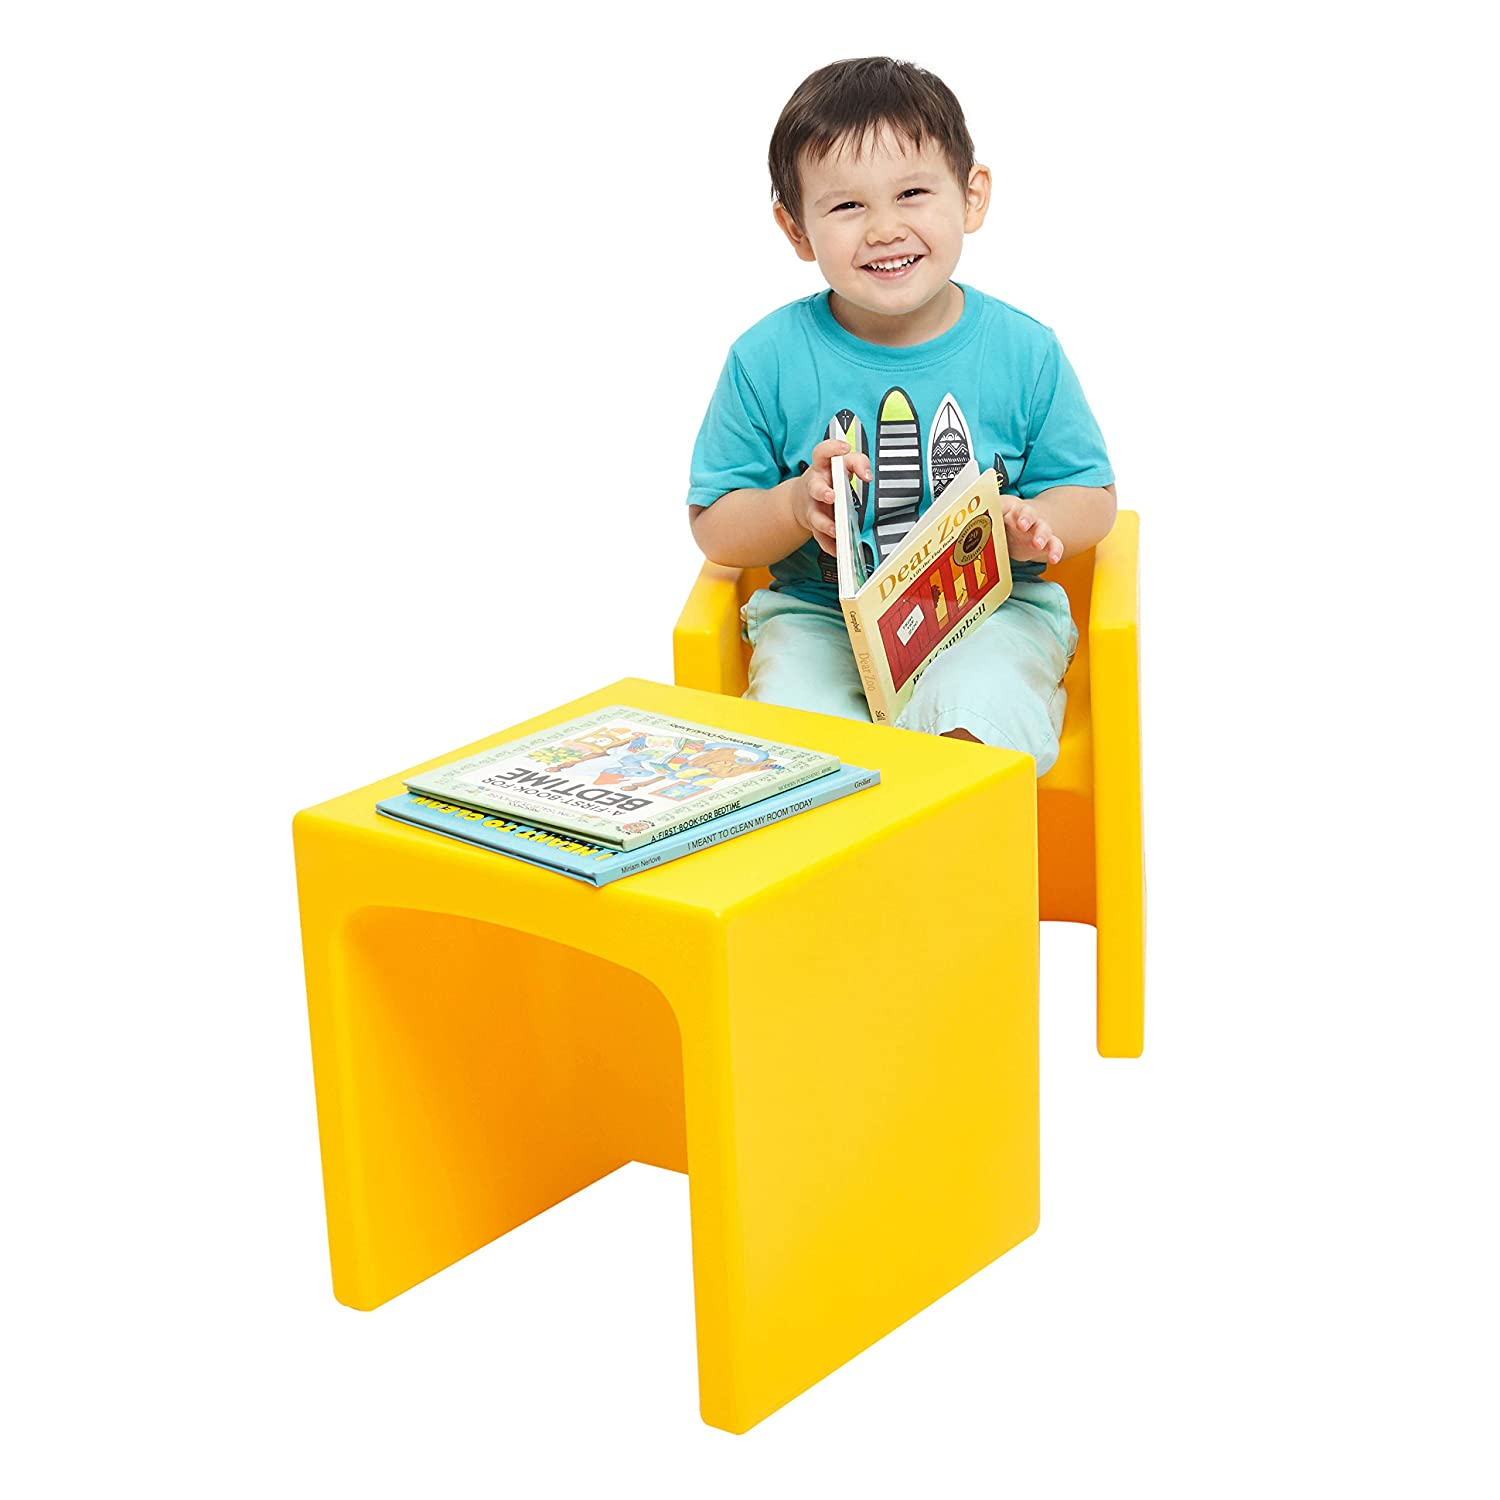 Blue Portable Indoor//Outdoor Play Seat or Table for Kids and Toddlers ECR4Kids Tri-Me 3-in-1 Cube Chair